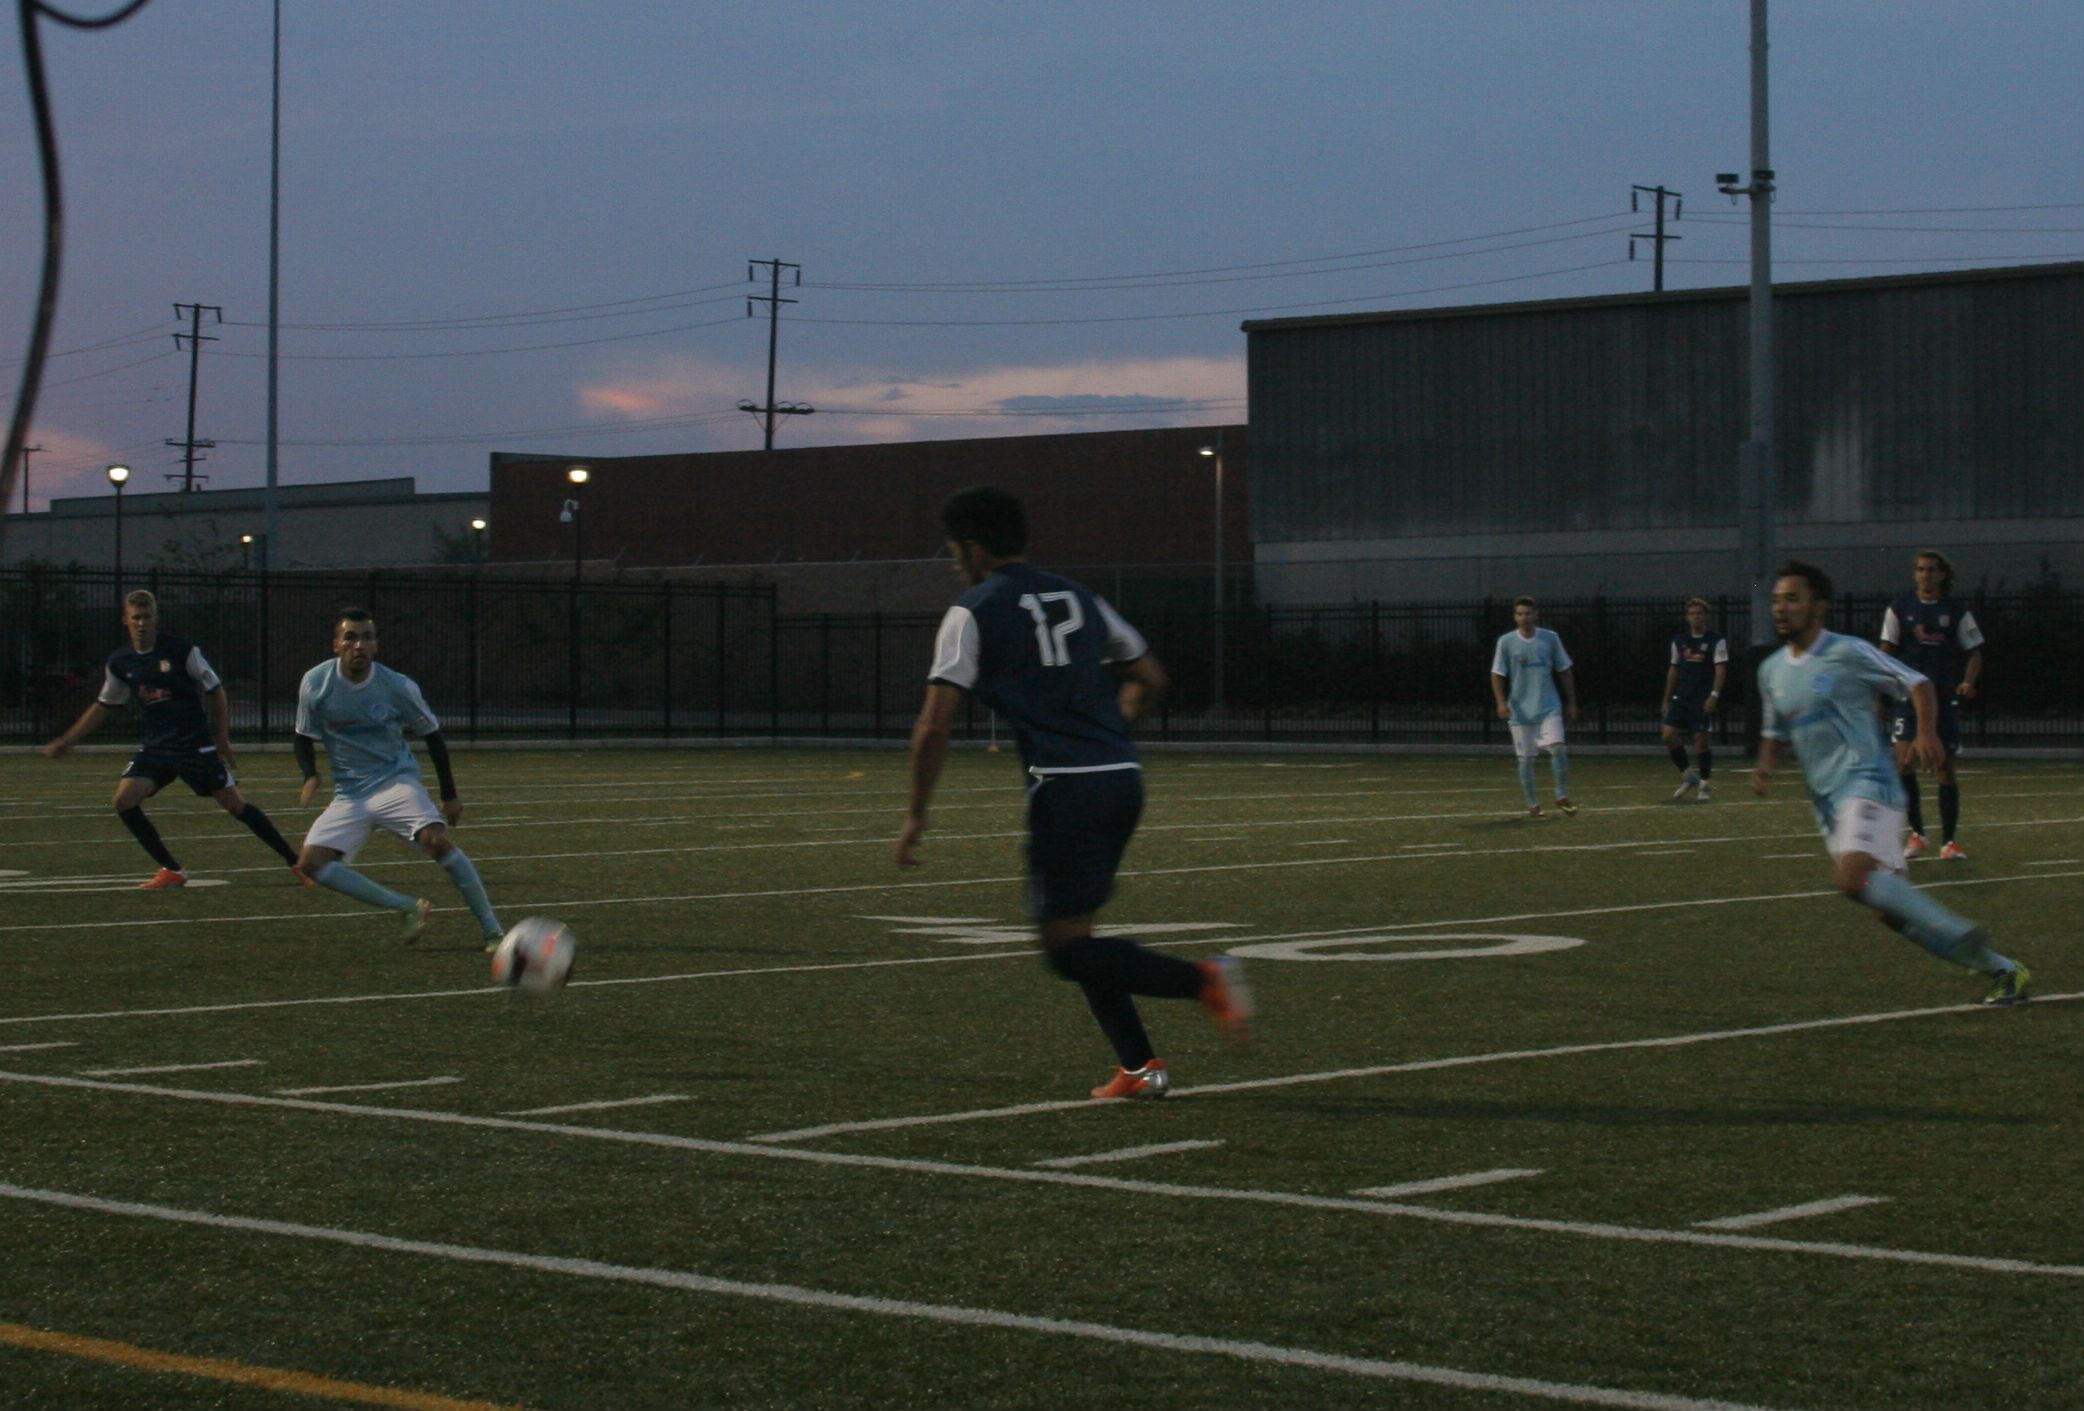 The LA Misioneros defeat the S.C Seahorses 5-0 this May 21 as they sit on top of the division with a demanding 7 points in 3 games.